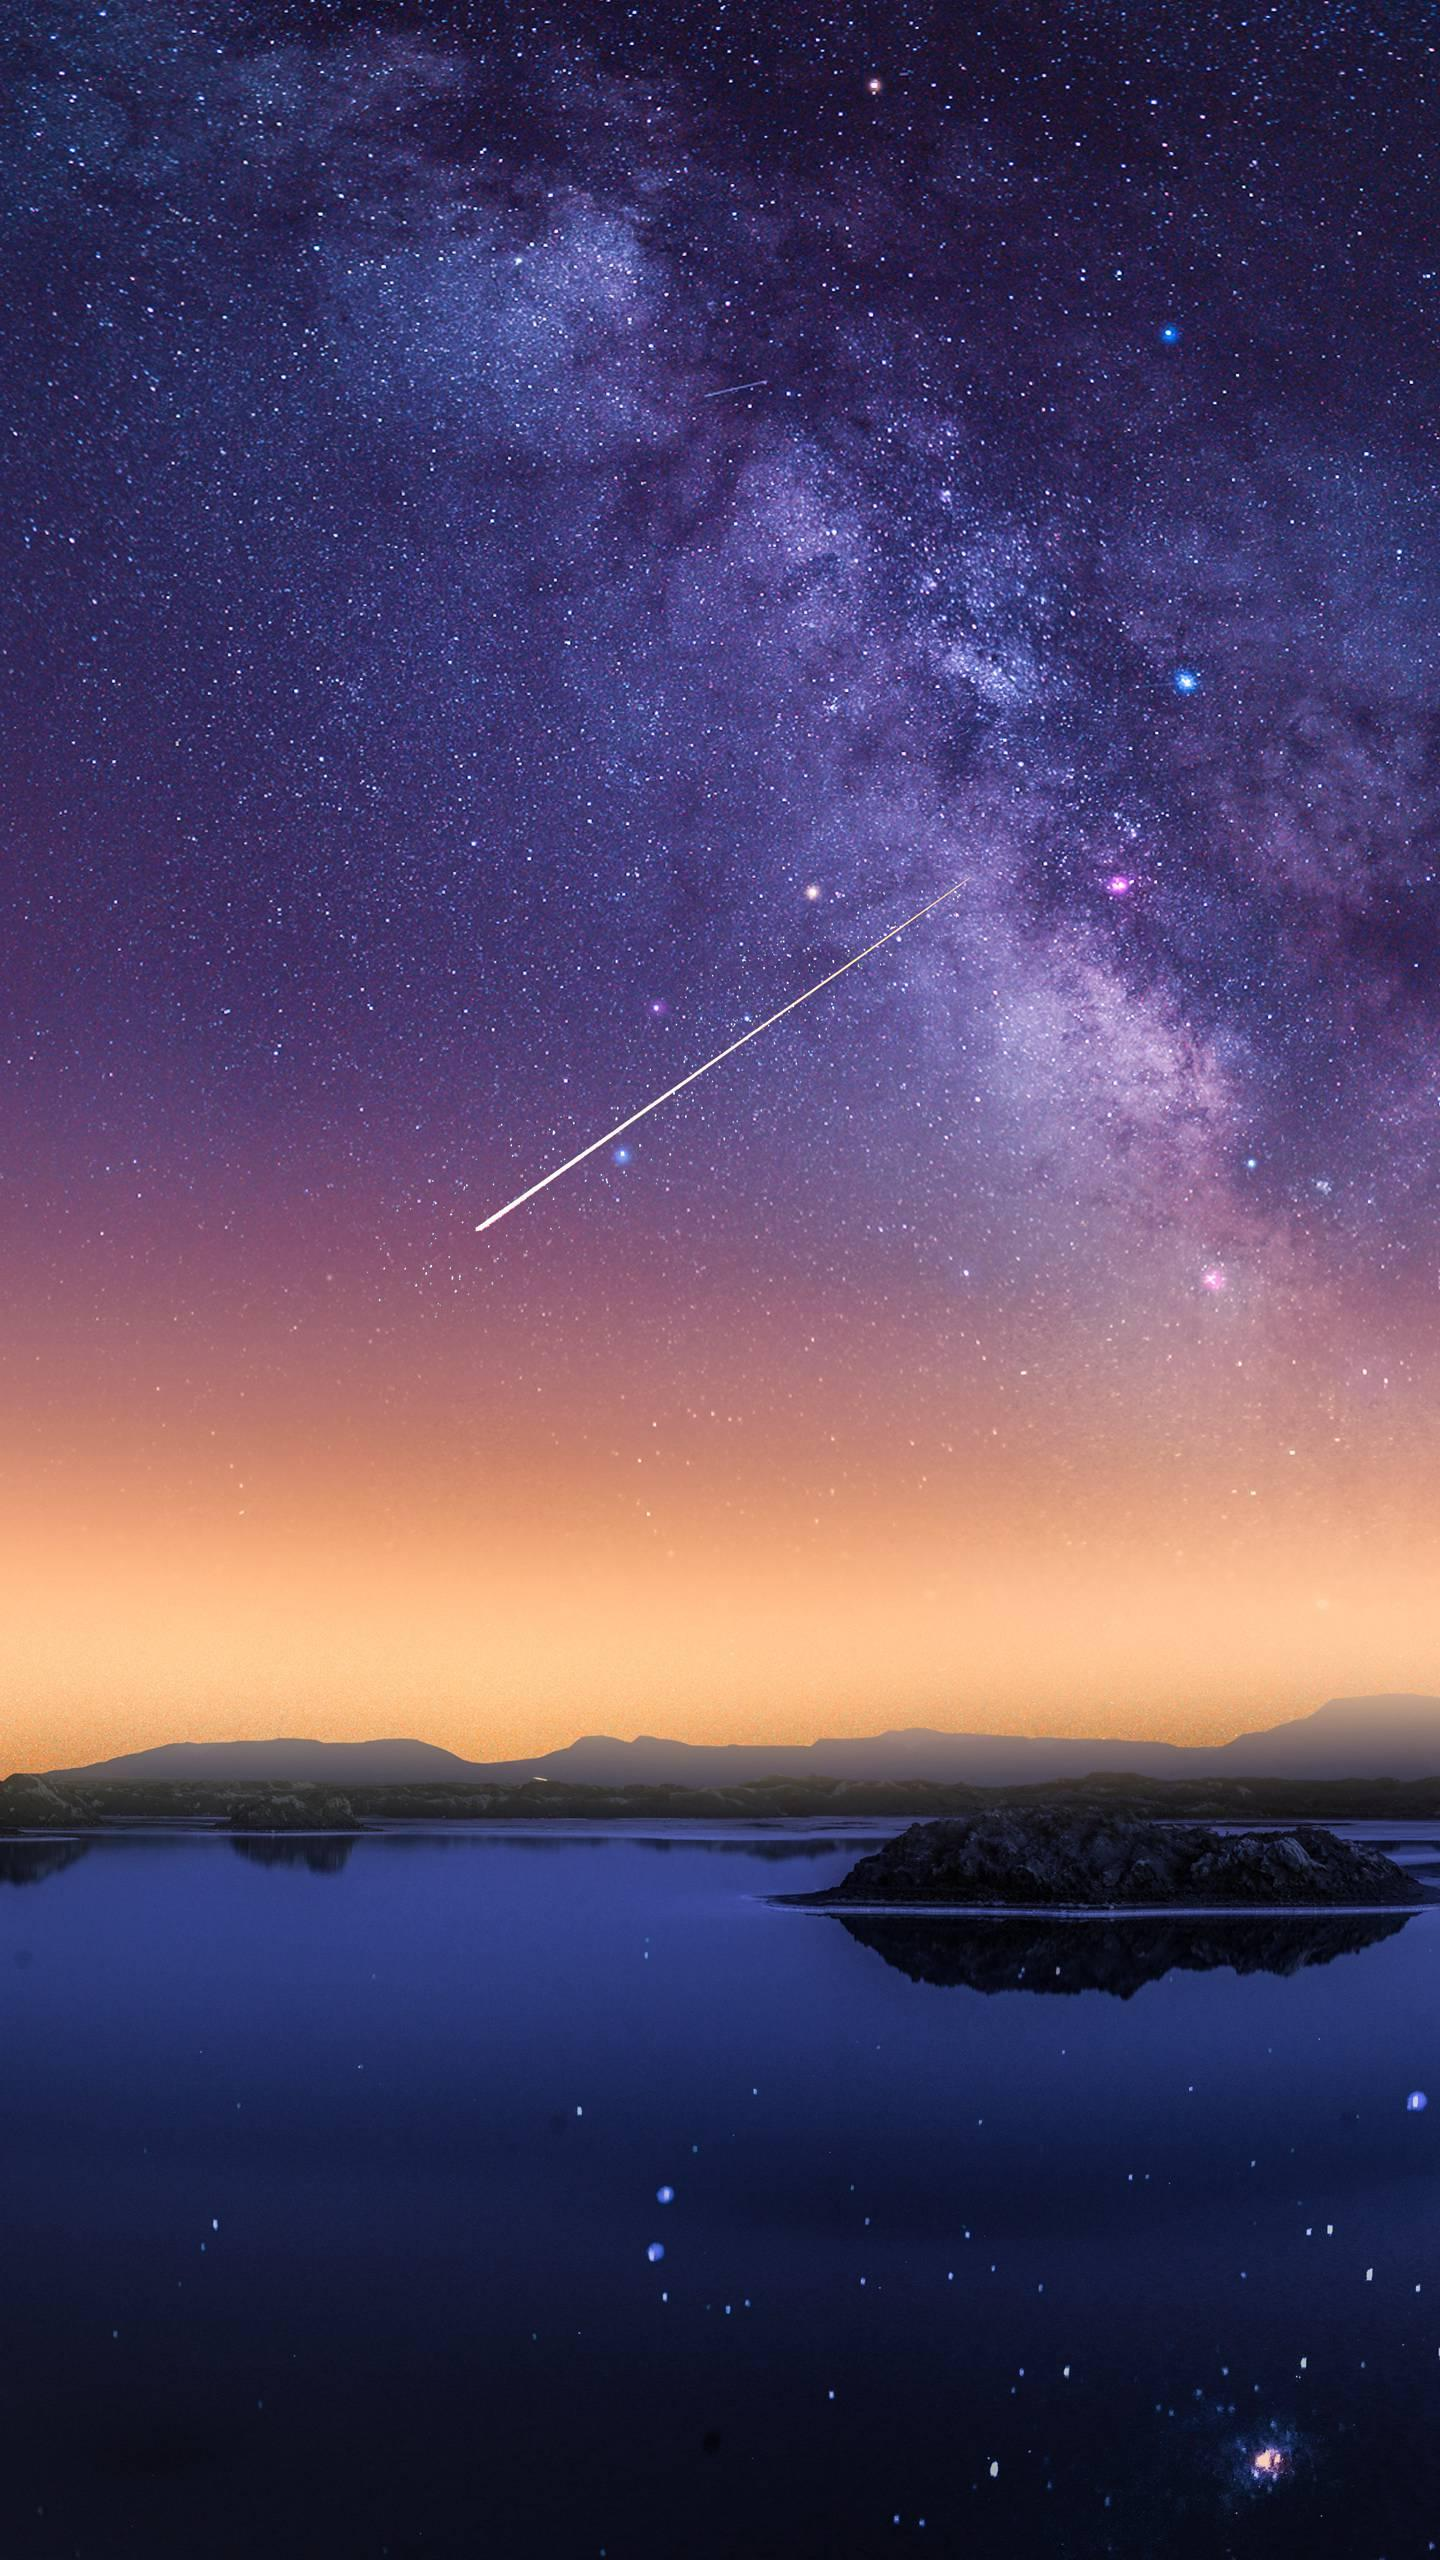 A meteor that glows and glows. Why does a meteor glow? Let's take a look.